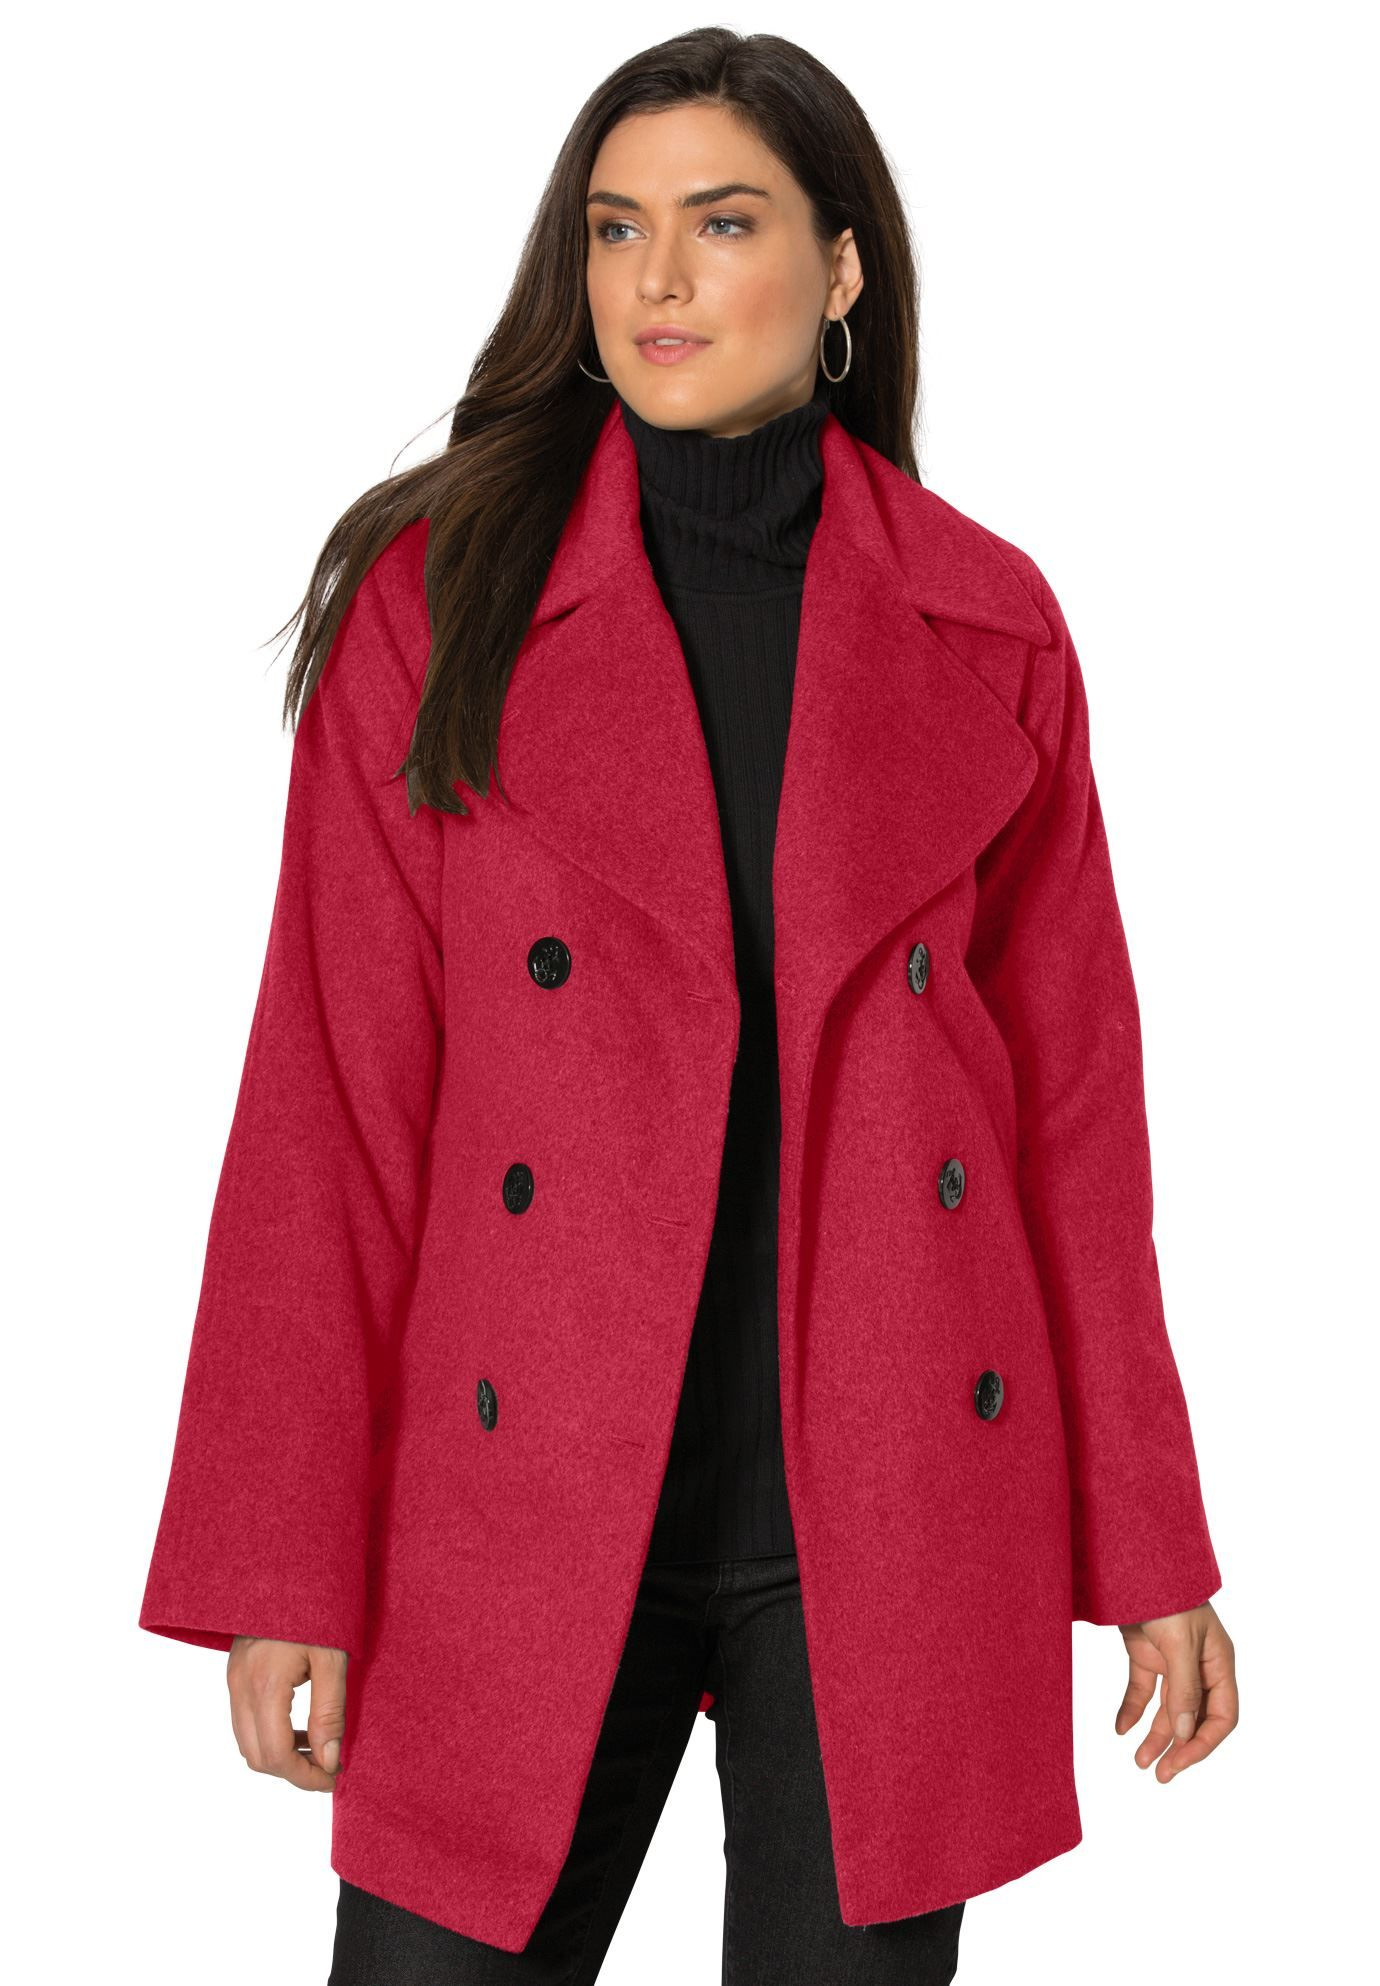 a4f452b63c0f Our classic plus size peacoat is the perfect top layer for modern ...